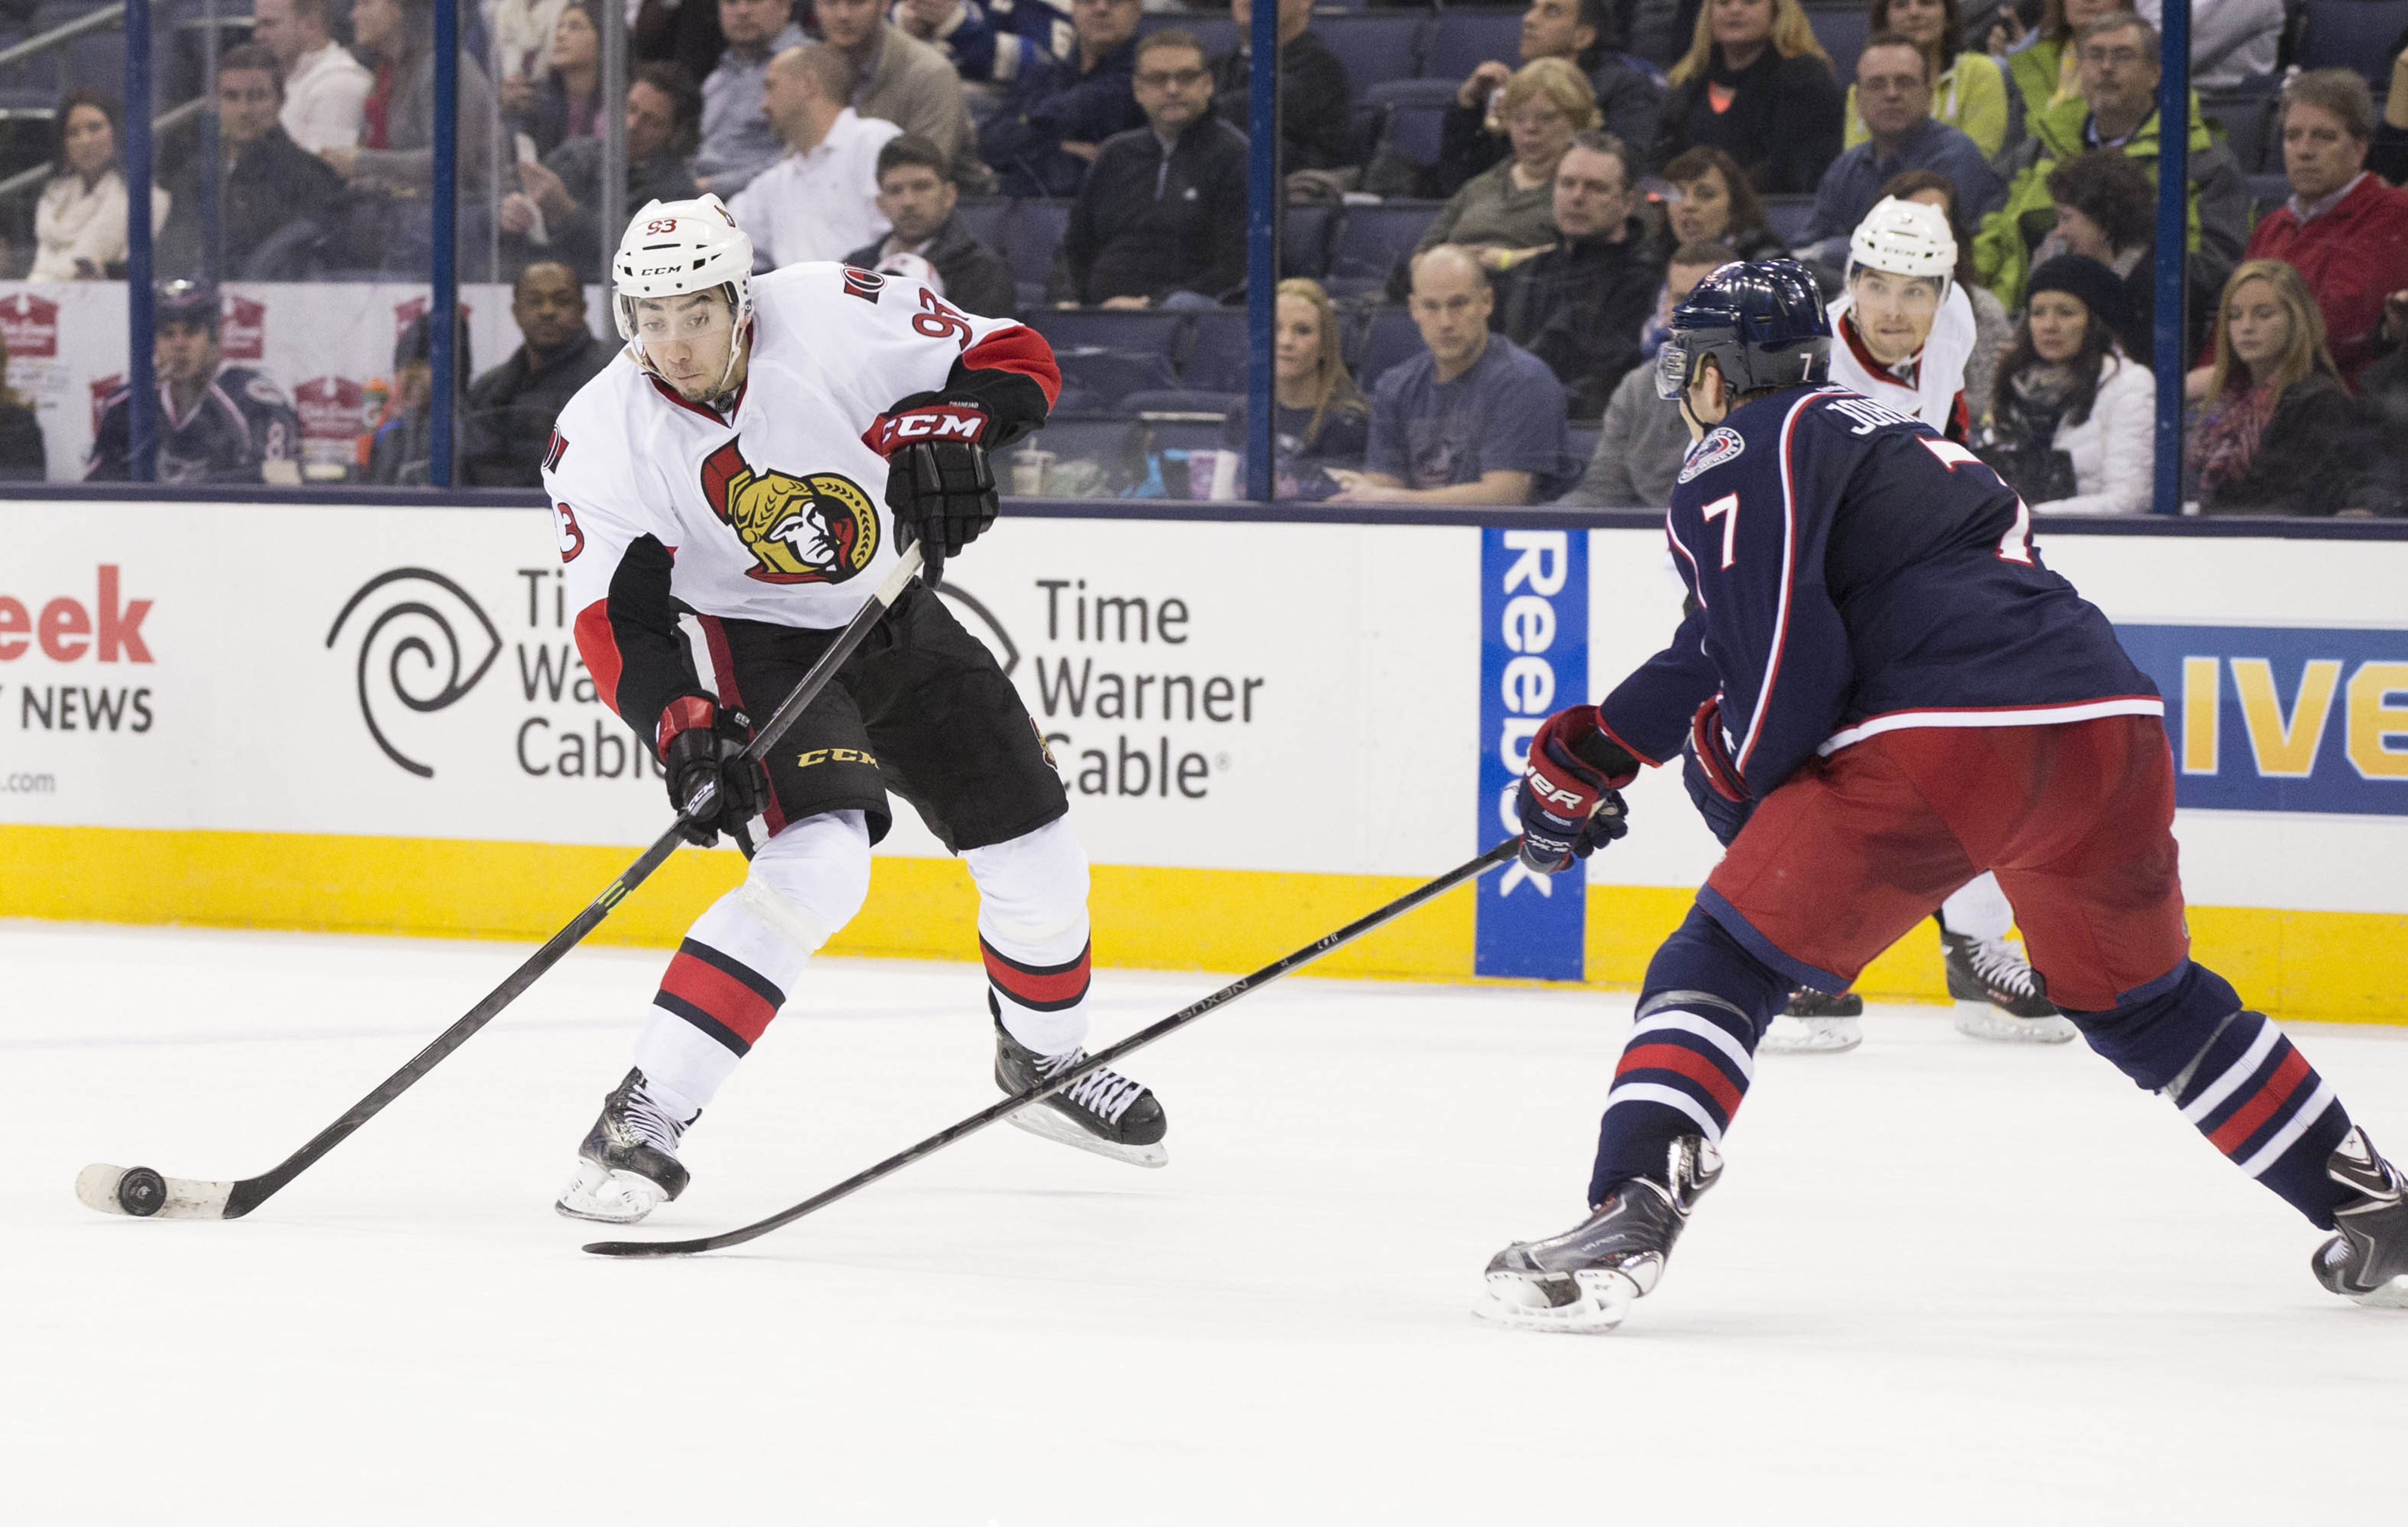 Zibanejad walks into a shot from the high slot area from a game last season against the Columbus Blue Jackets